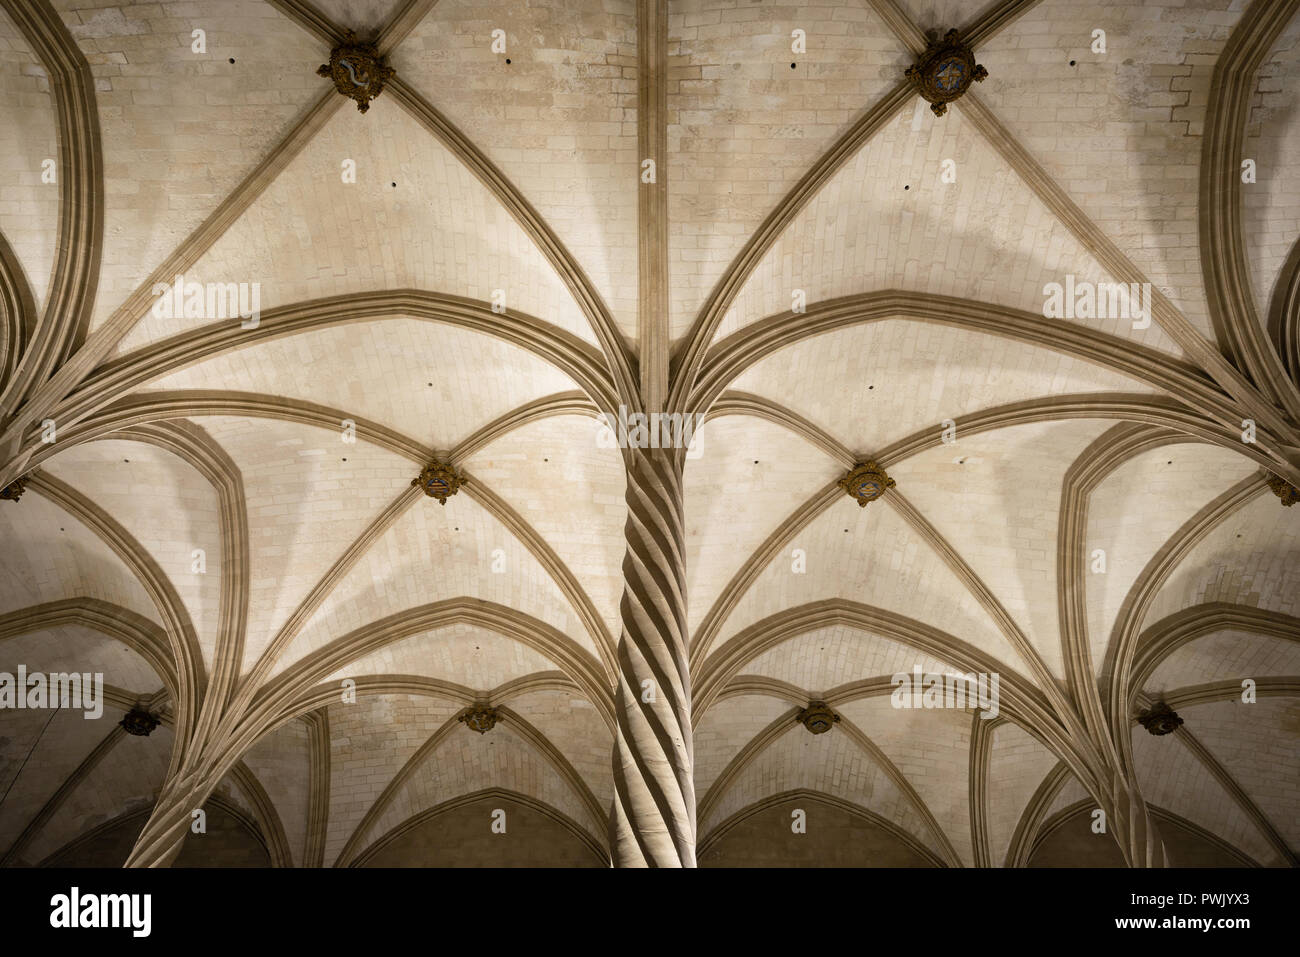 La Llotja gothic vaulted ceiling interior in Palma de Mallorca, Balearic islands, Spain Stock Photo